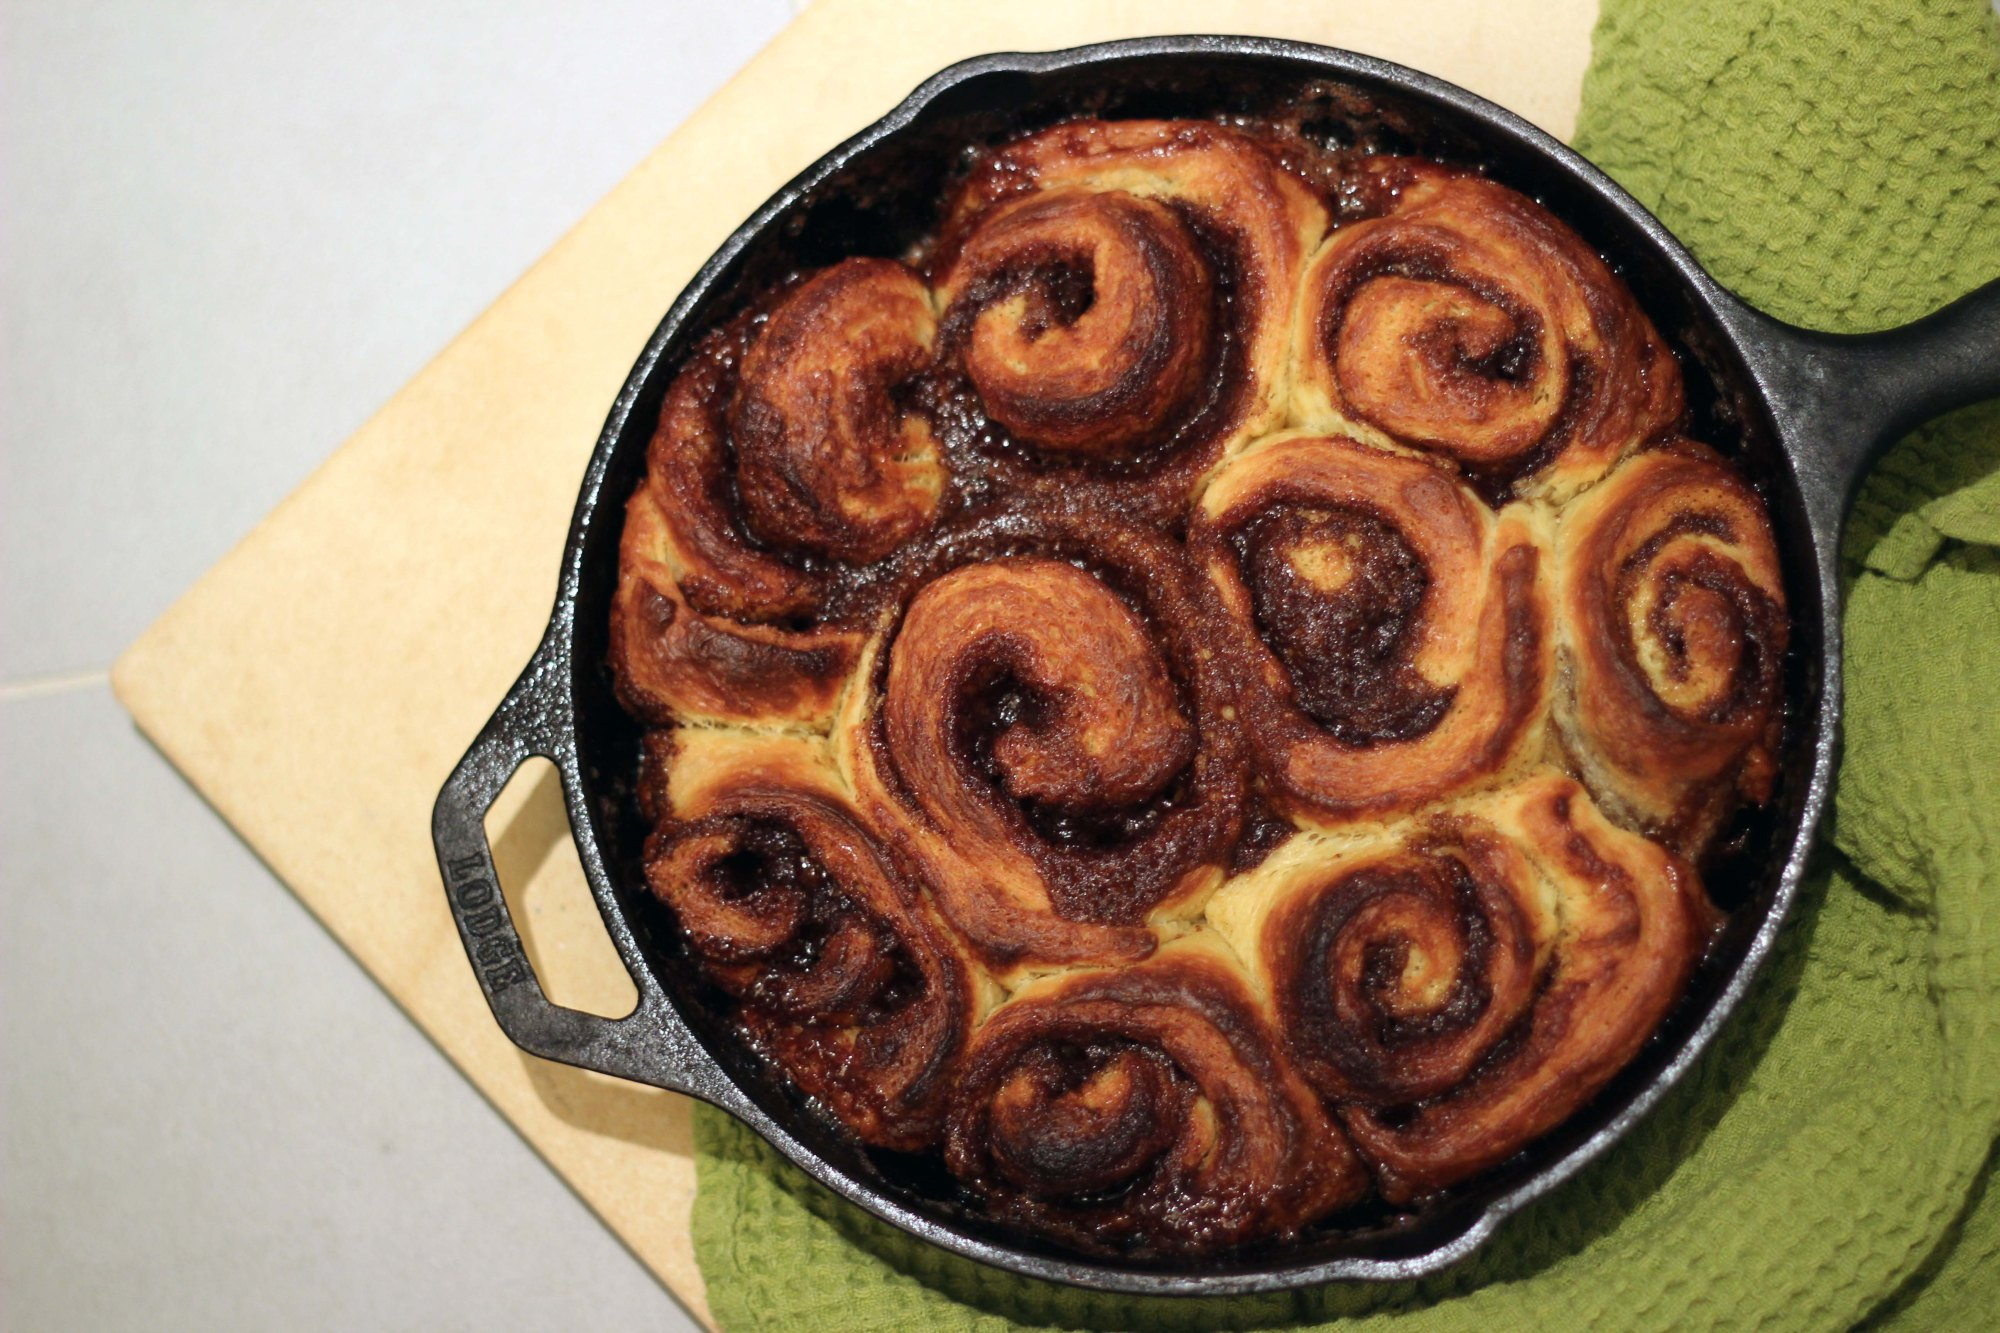 cinnamon rolls in skillet